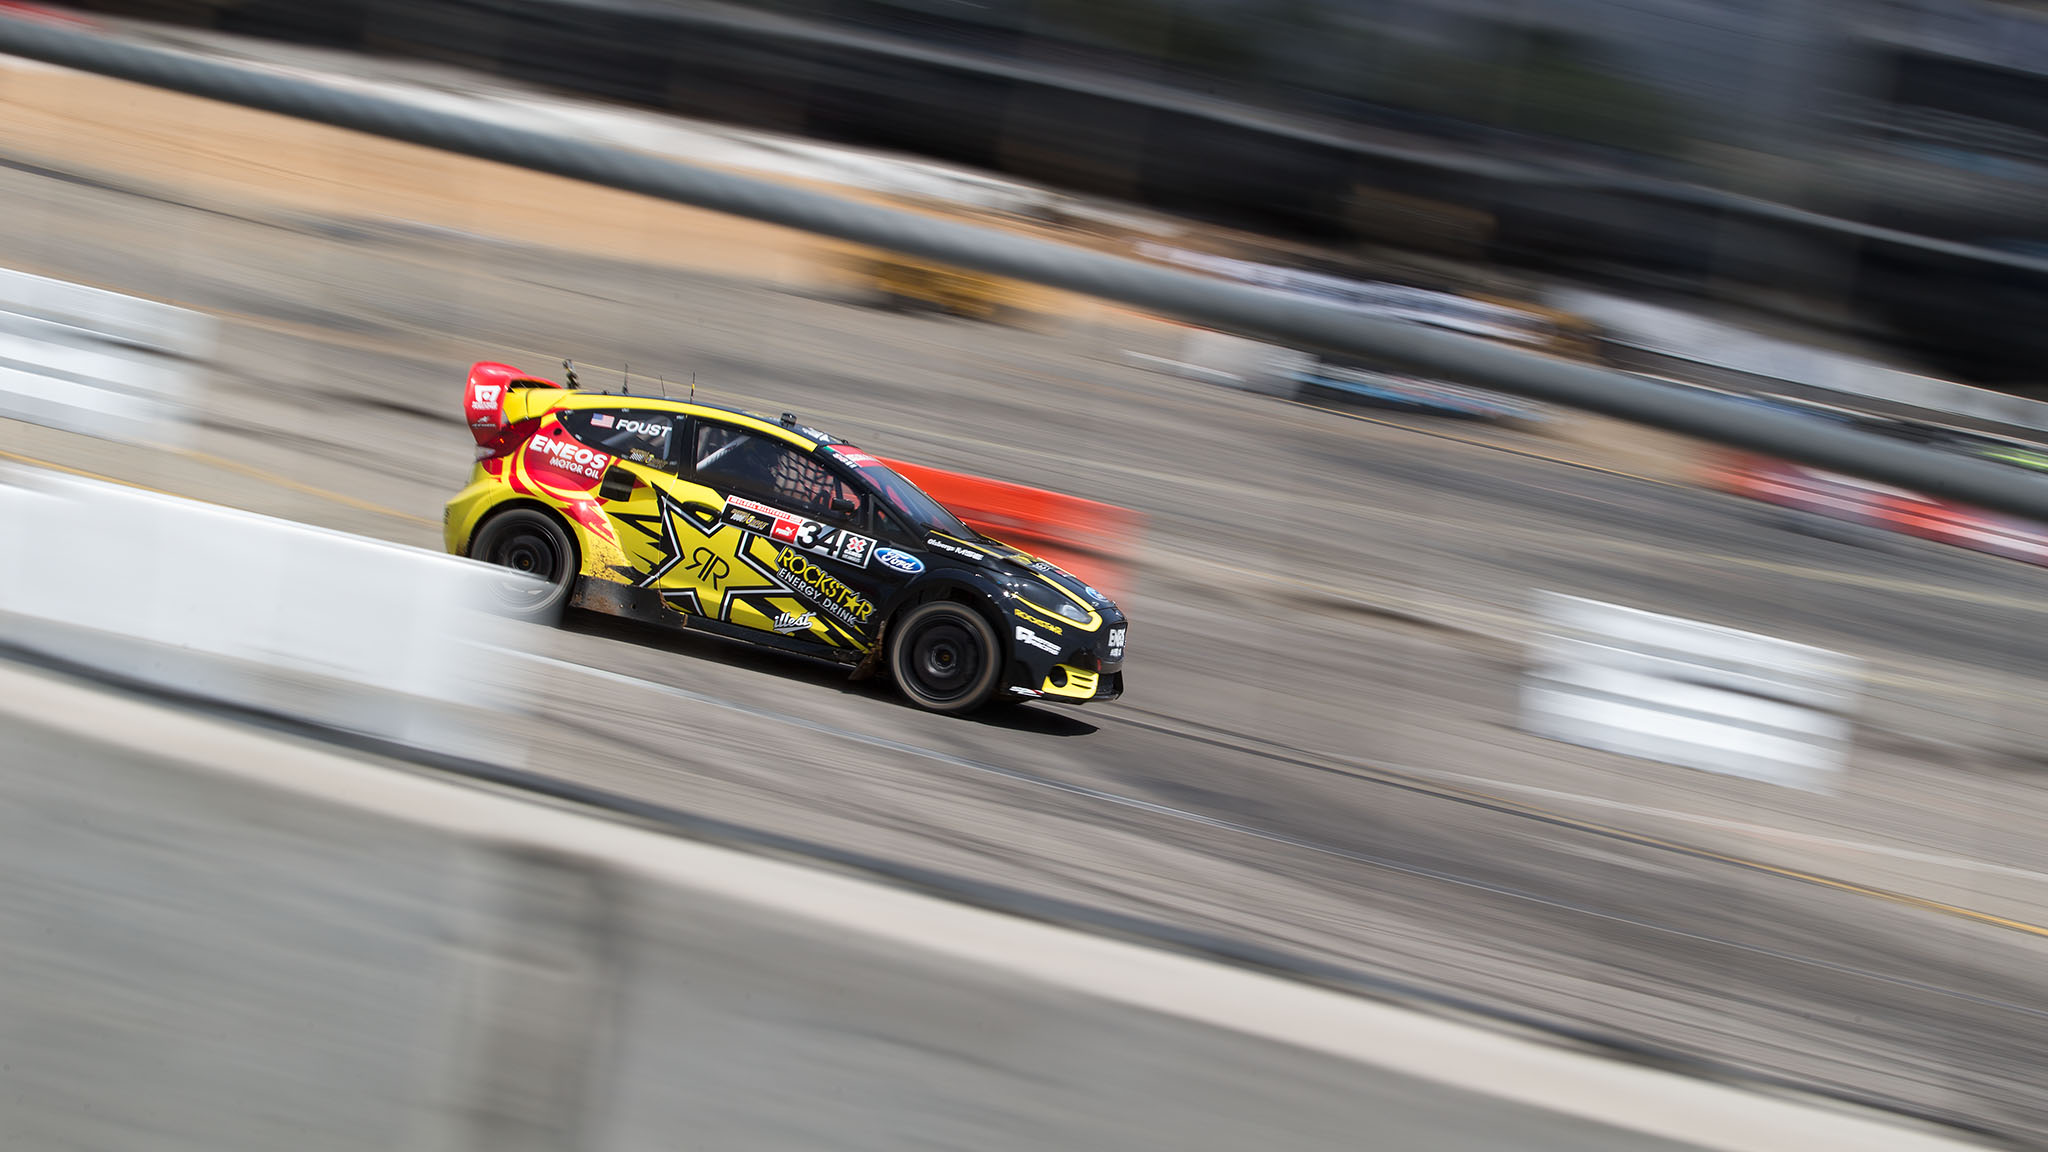 Tanner Foust now has nine X Games medals, including the silver he picked up in the smash-'em-up Ford RallyCross final just one day after winning gold in the X Games debut of Gymkhana GRID.